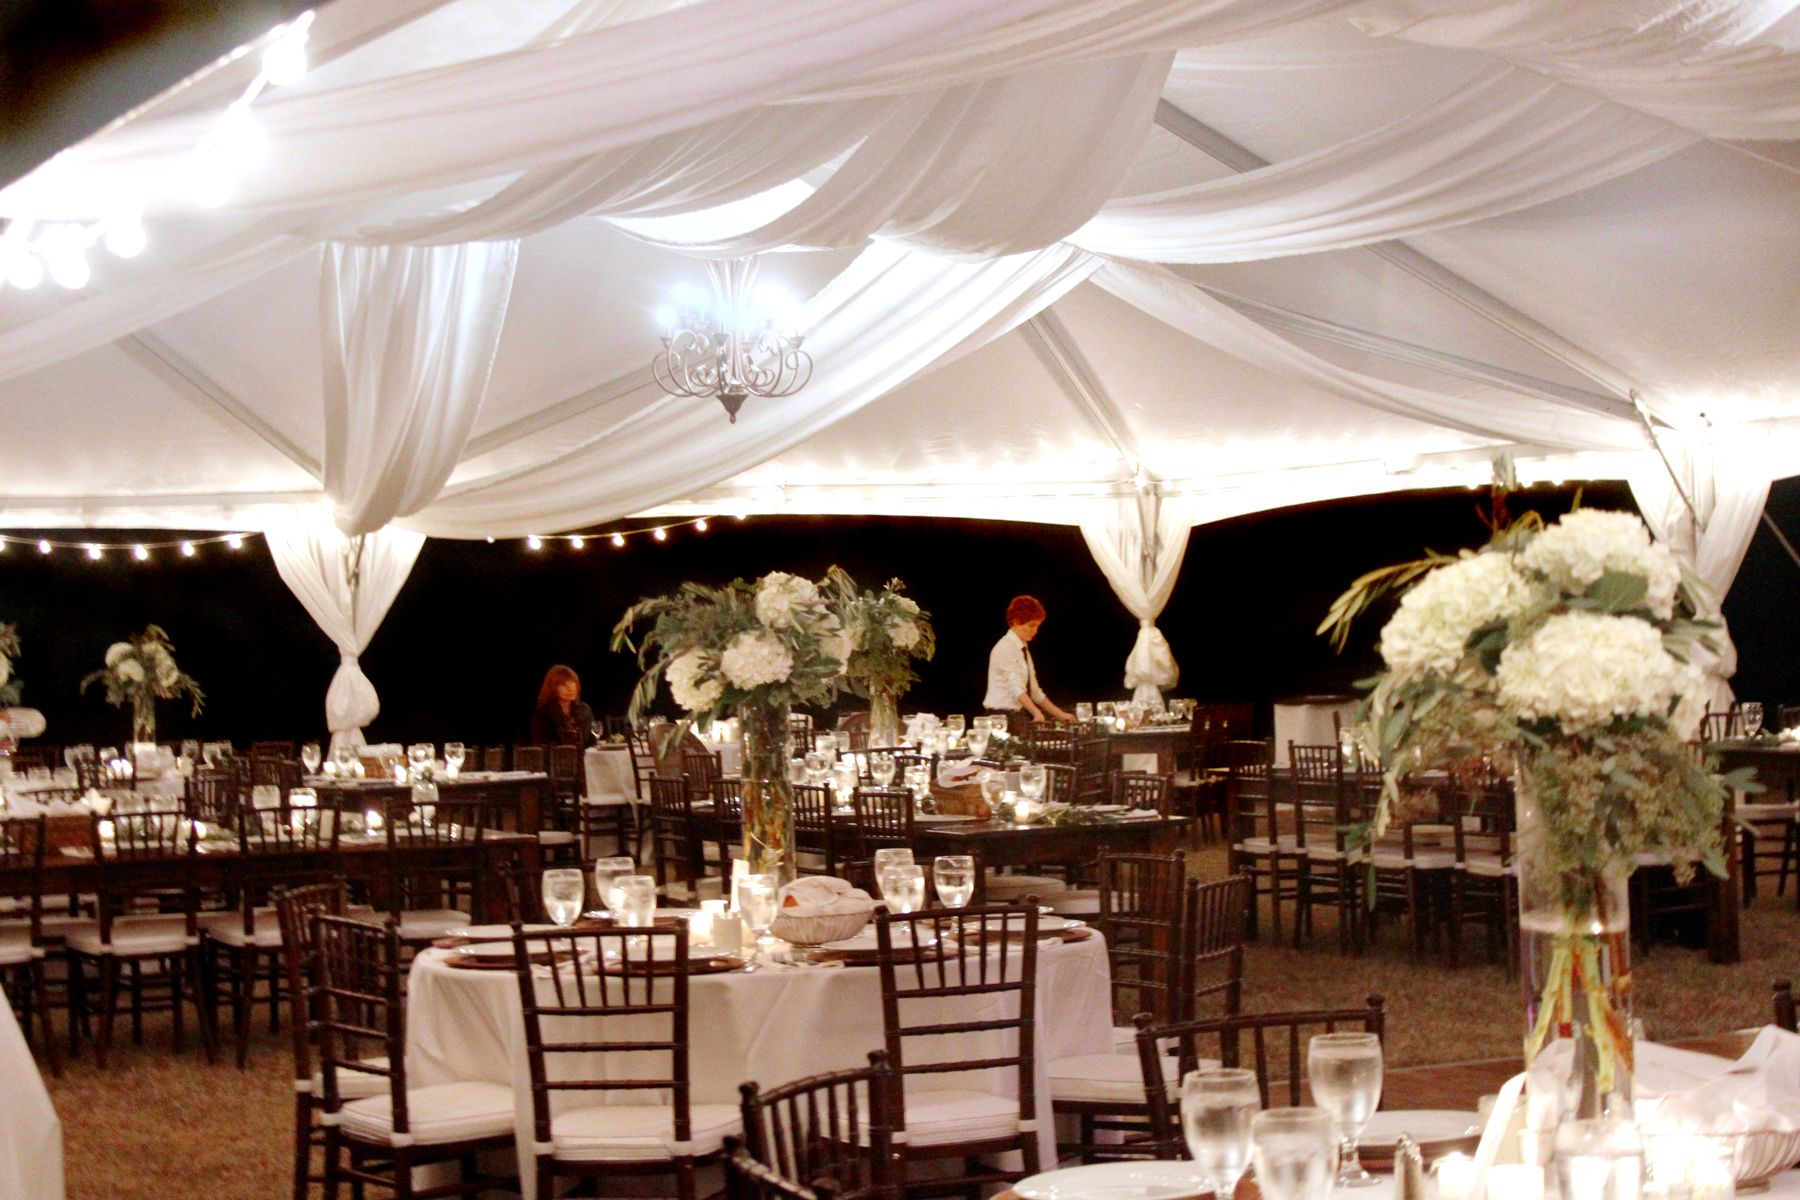 View Frame Tent Rental Pricing Photo Galleries And More Oconee Events Is Georgias Most Stylish Furniture Company